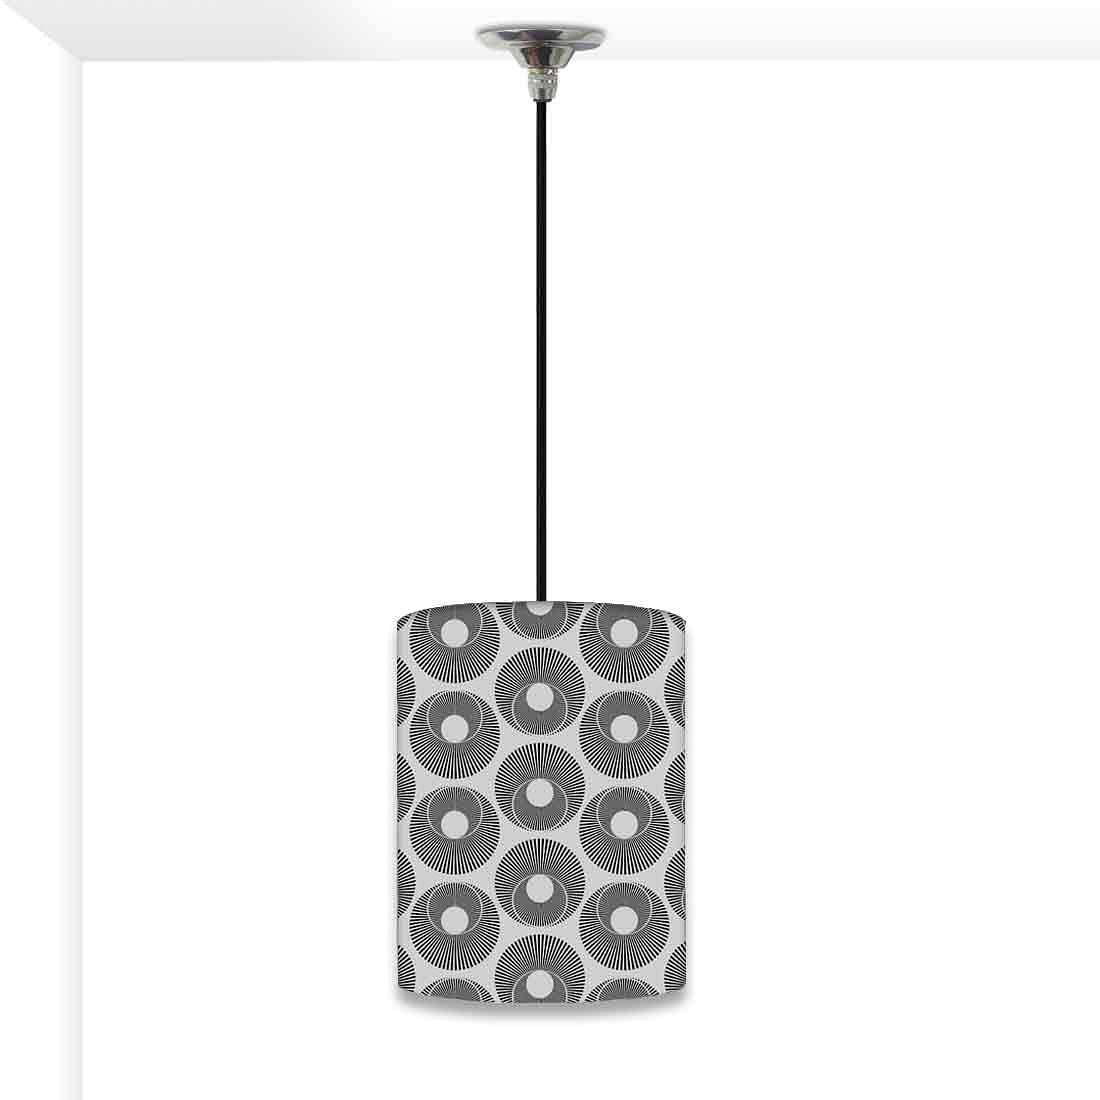 Ceiling Hanging Pendant Lamp Shade - Grey Retro Art